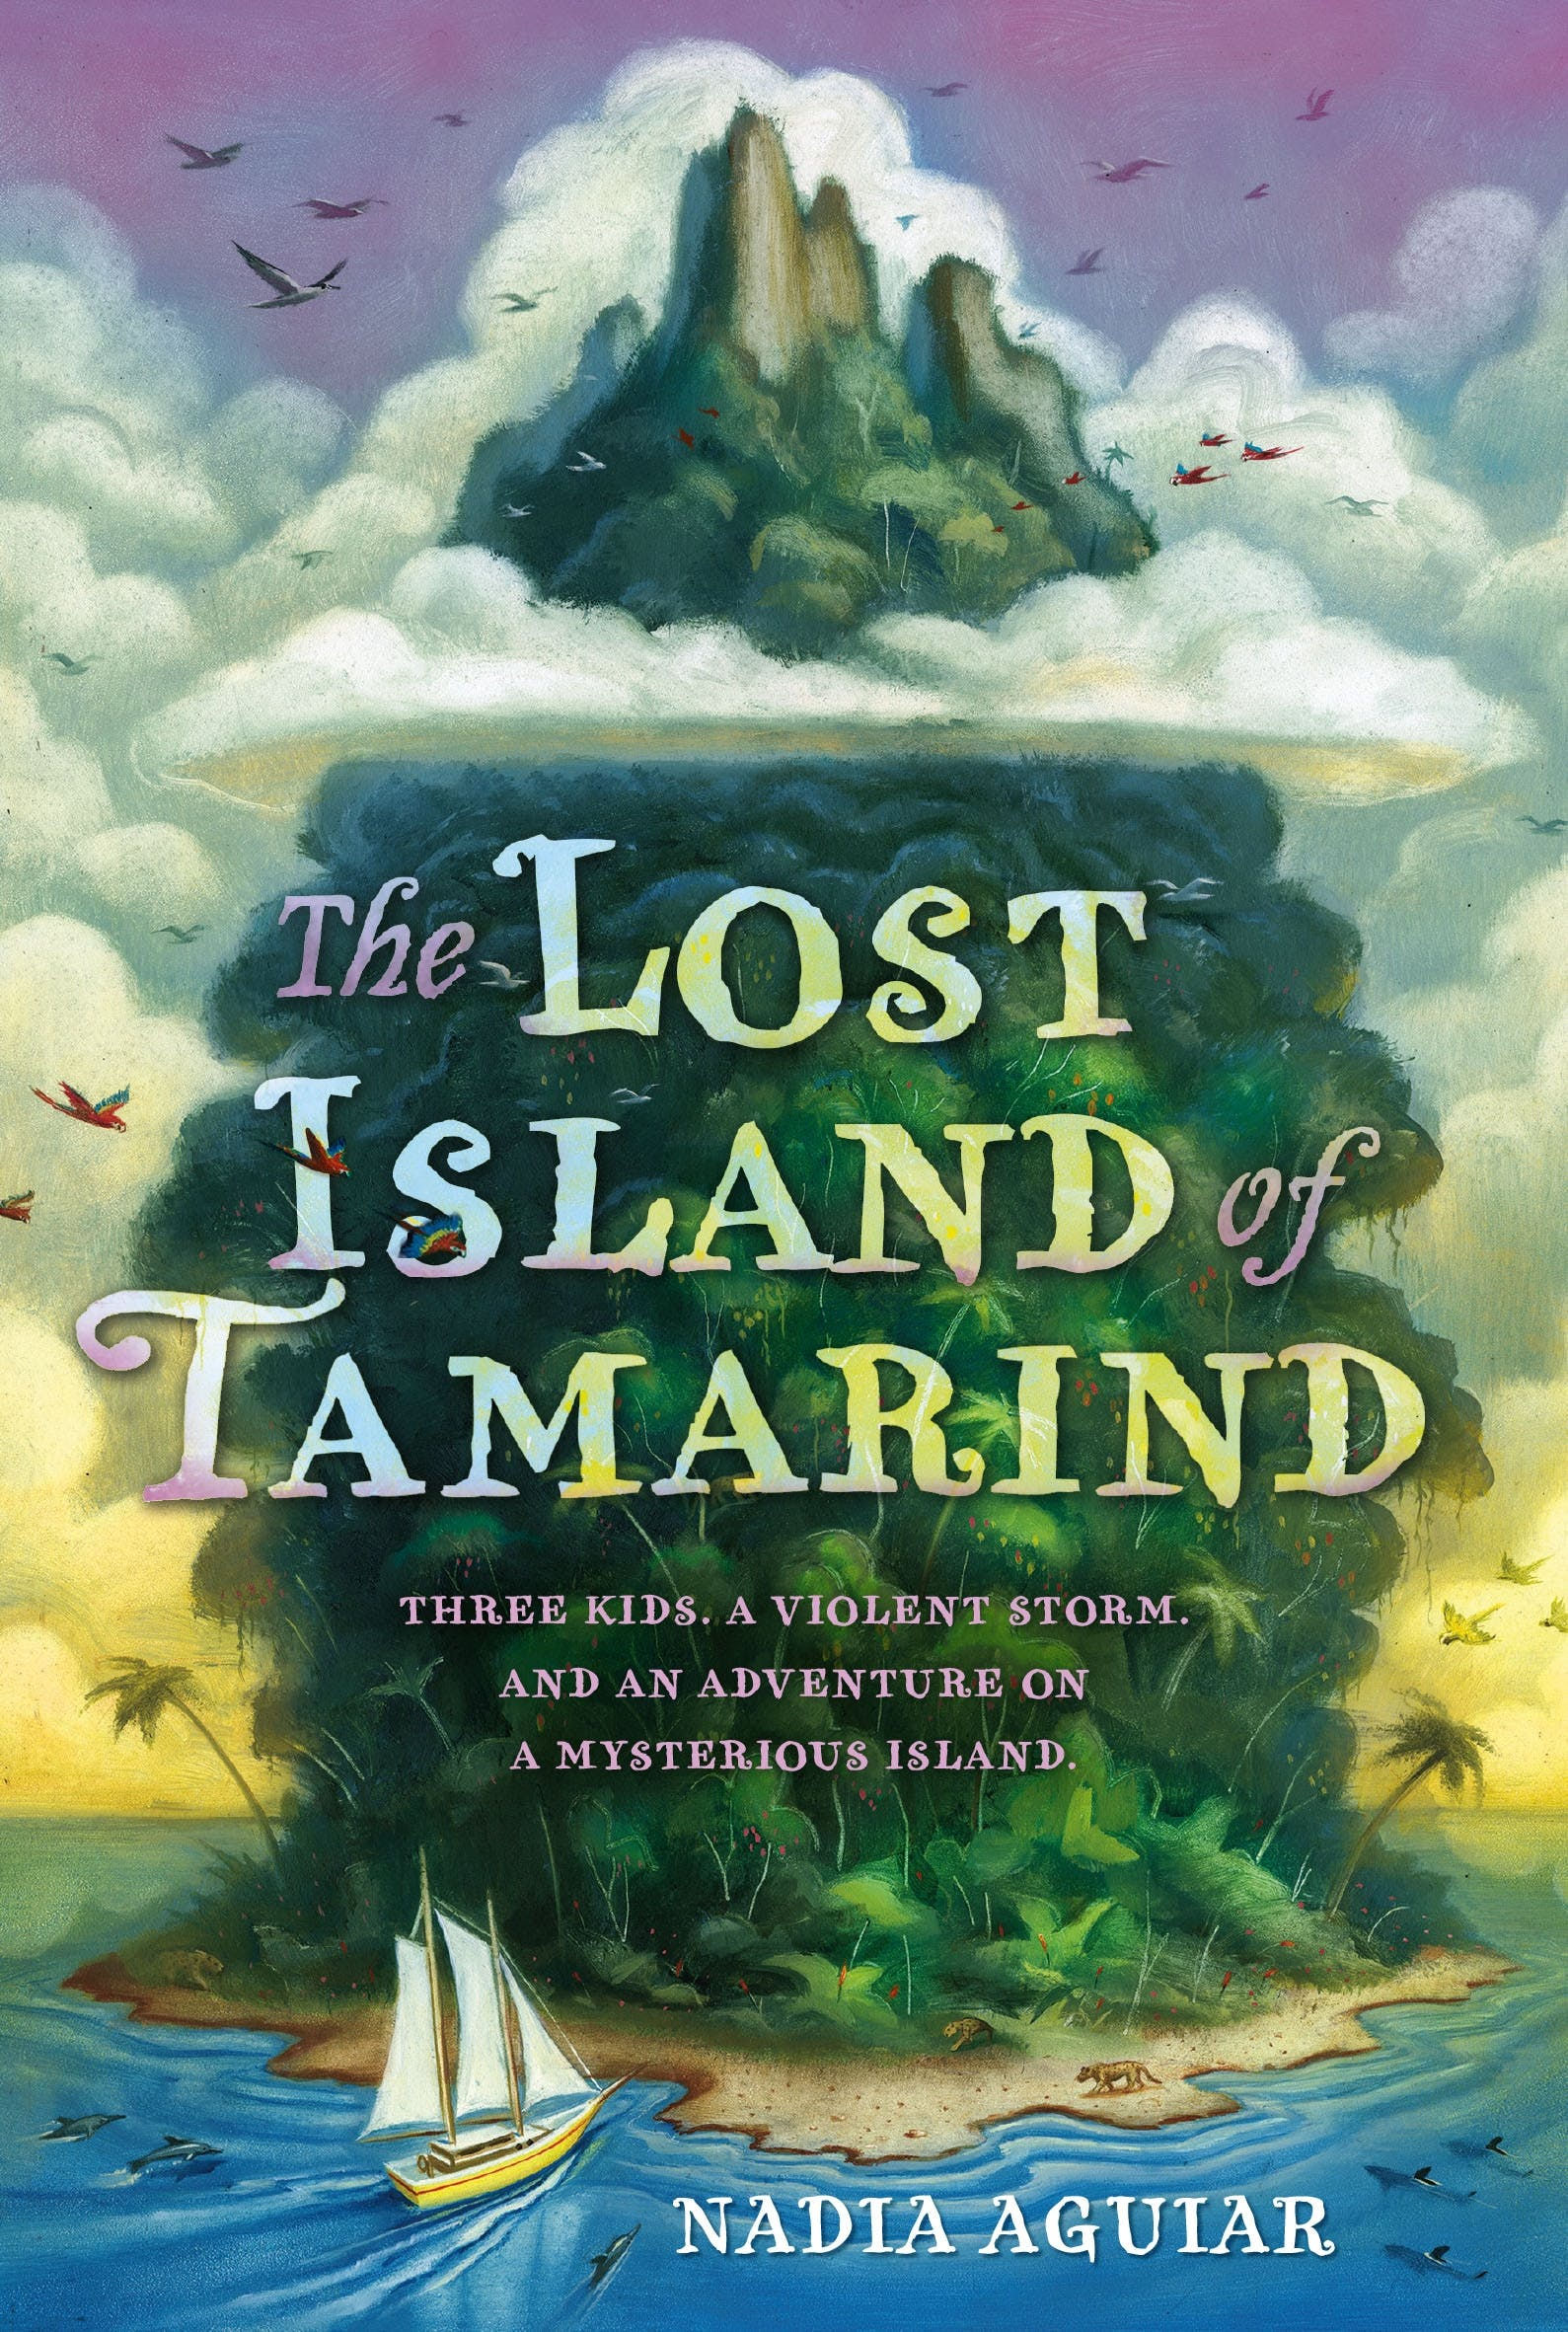 Image of The Lost Island of Tamarind